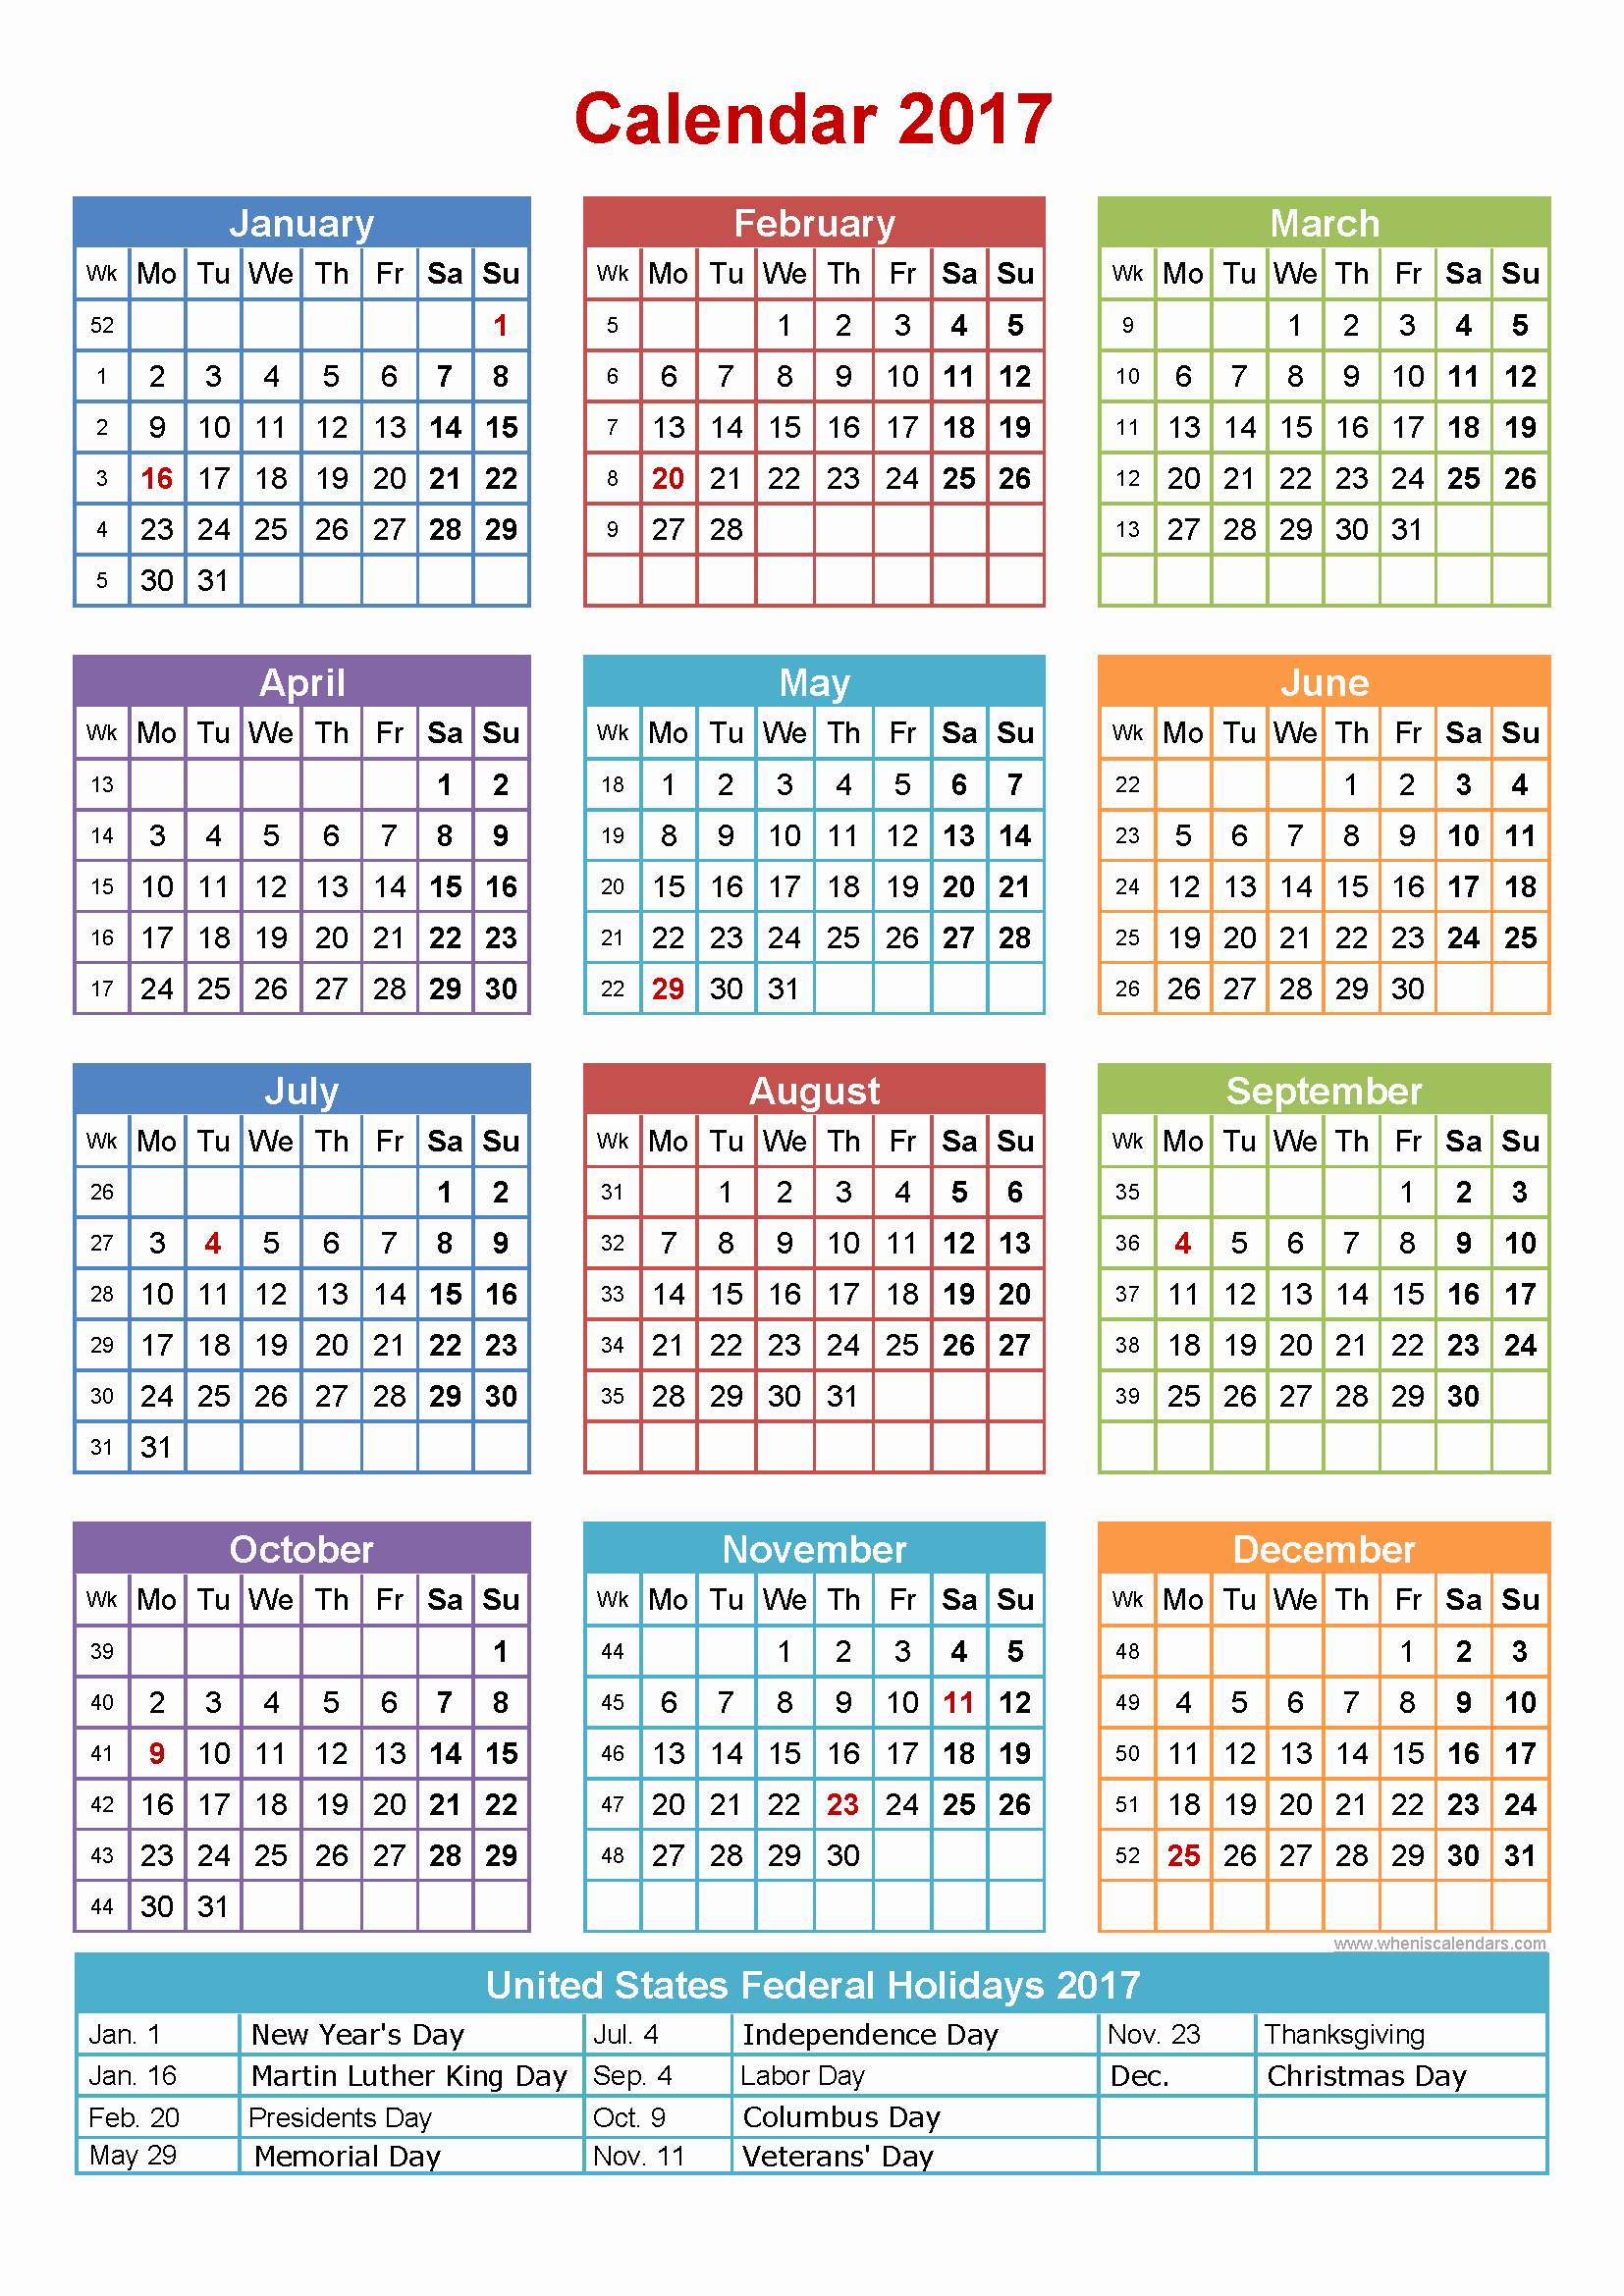 Calendar 2017 Template with Holidays Luxury Free 2017 Calendar with Holidays